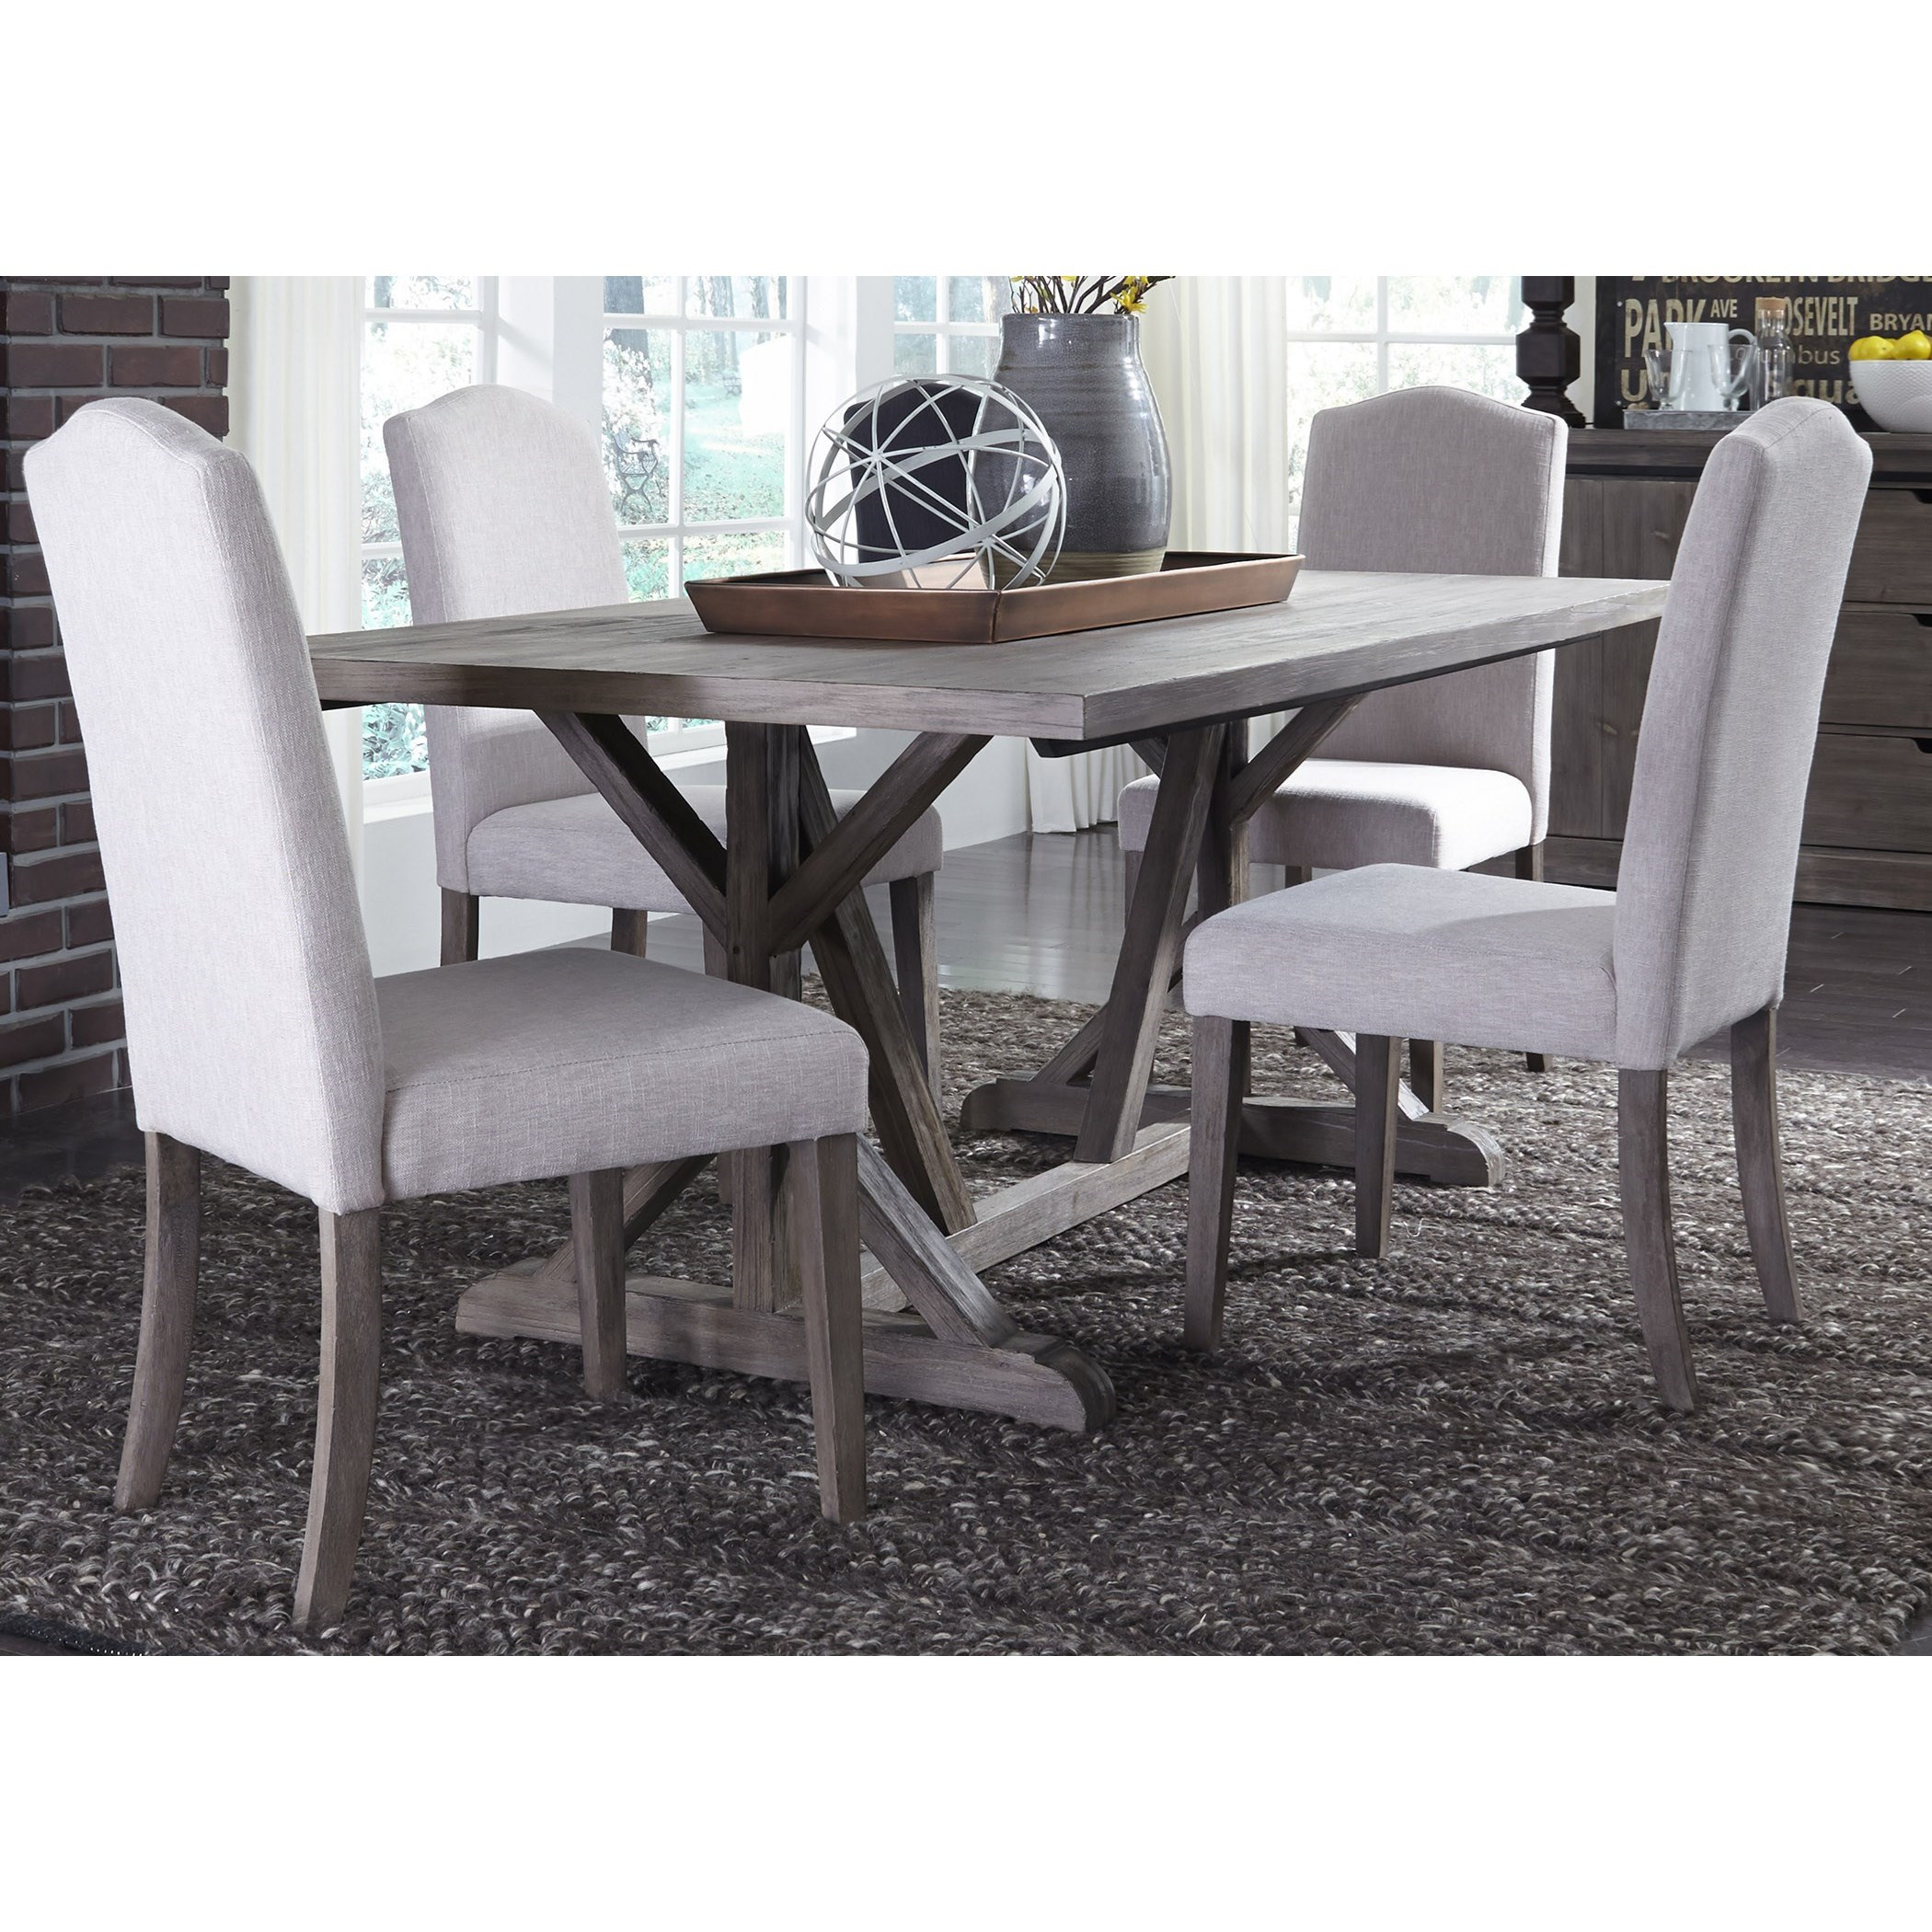 Carolina Lakes 5 Piece Trestle Table Set  by Liberty Furniture at Northeast Factory Direct